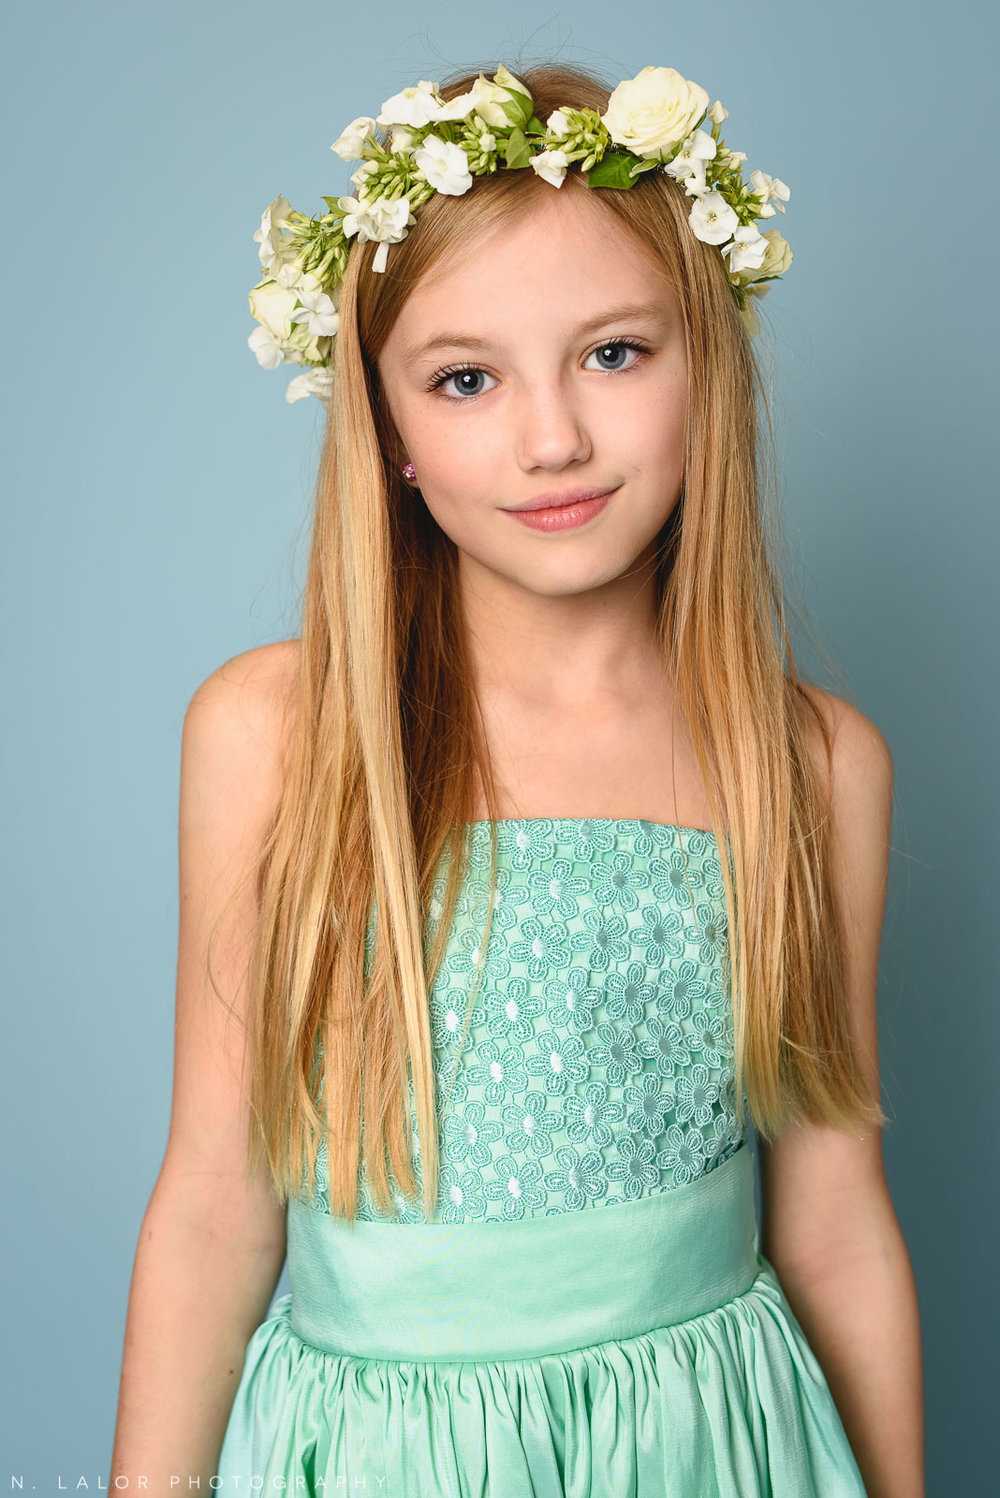 Spring flower crown and a green Stella M'Lia dress. Tween girl fashion portrait by N. Lalor Photography. New Canaan, Connecticut.